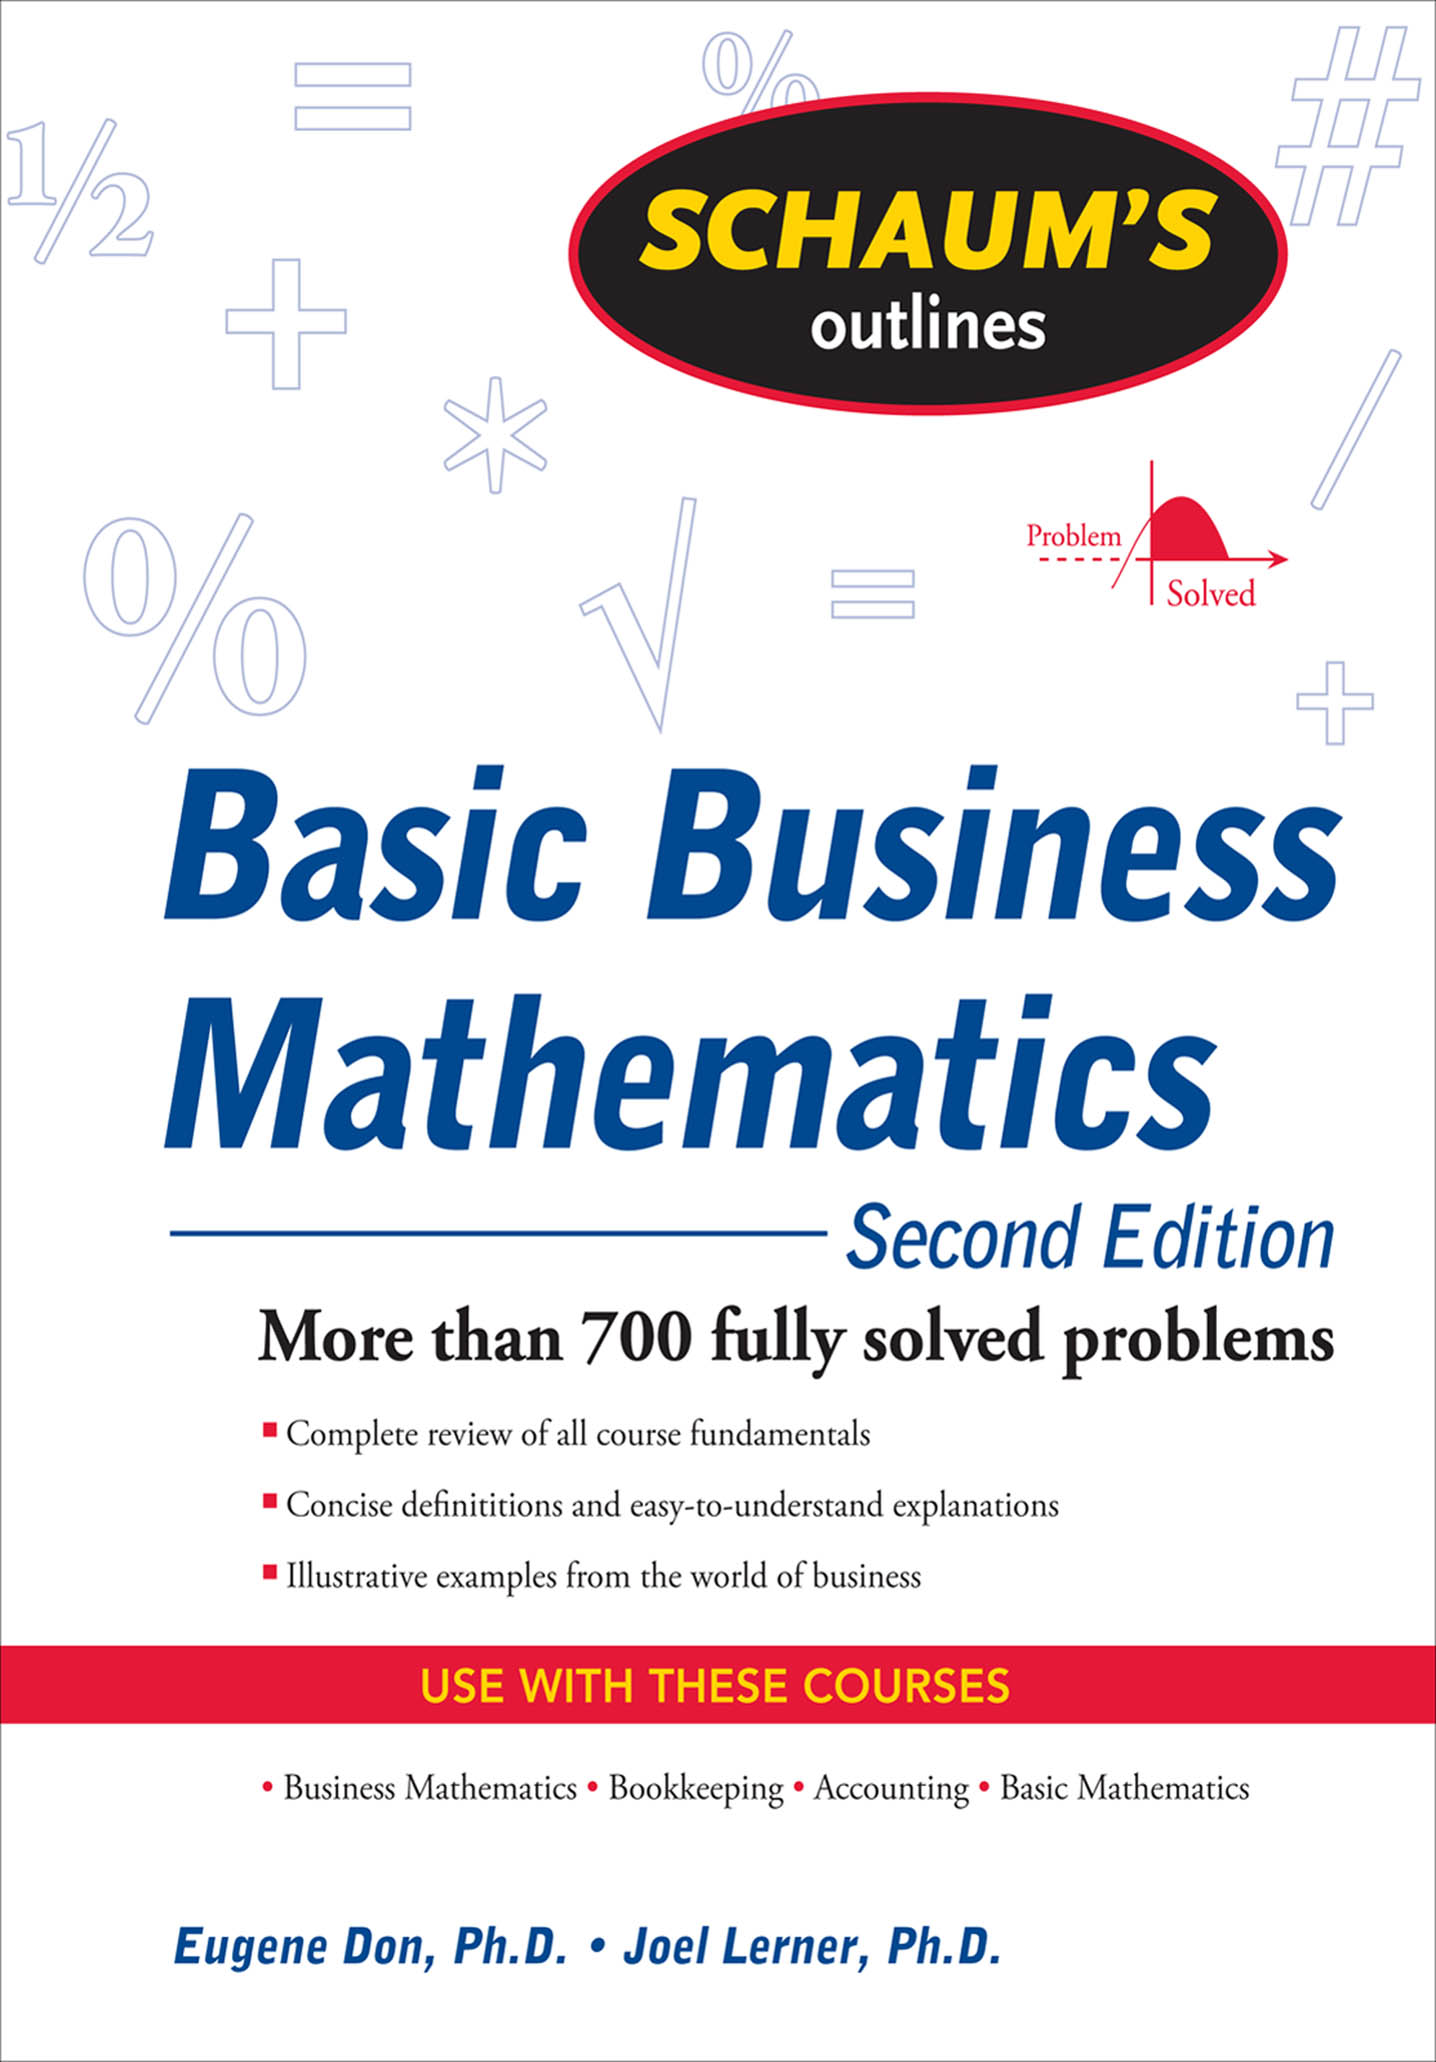 Download Ebook Schaum's Outline of Basic Business Mathematics, 2ed (2nd ed.) by Eugene Don Pdf